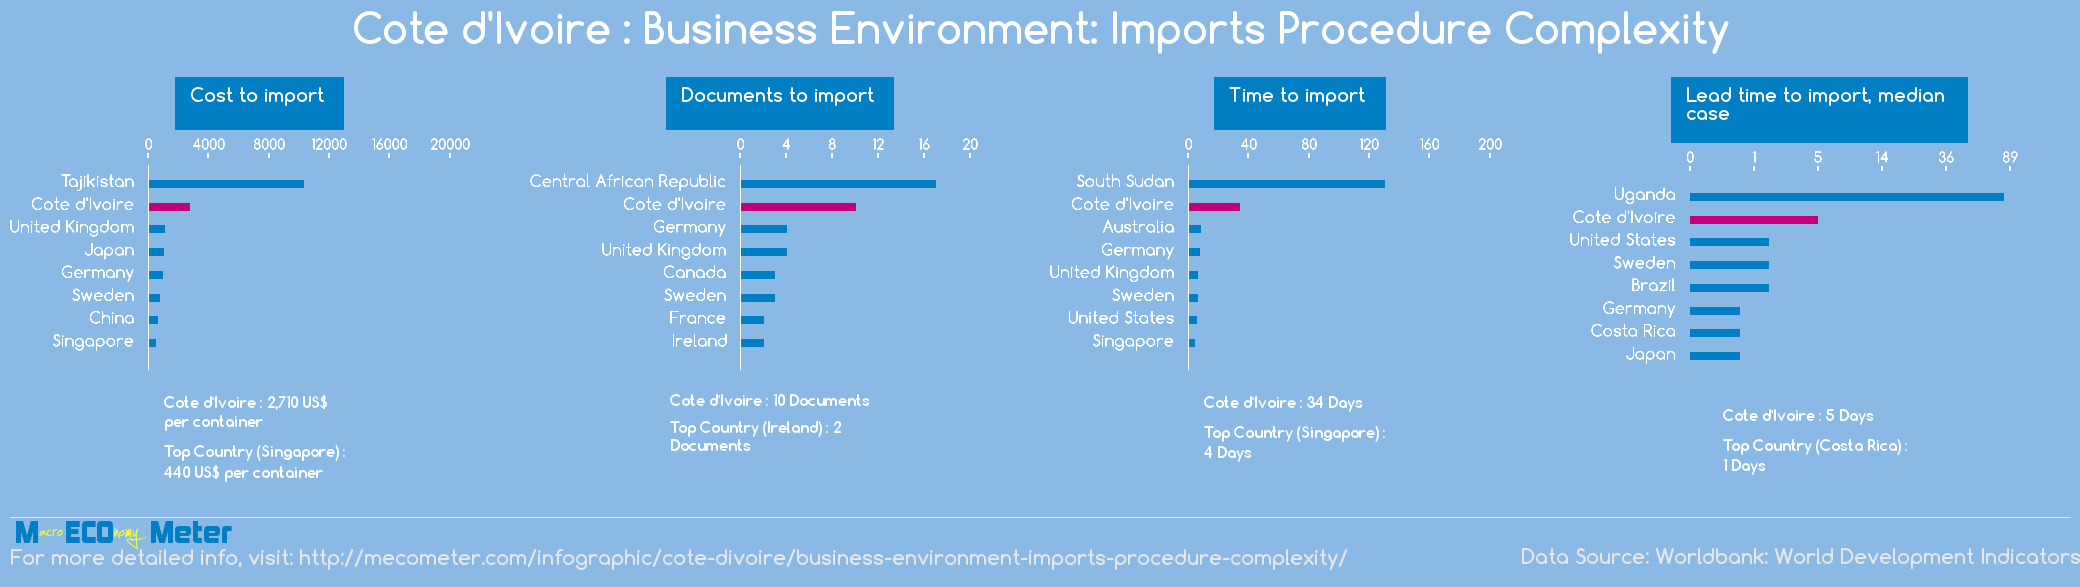 Cote d'Ivoire : Business Environment: Imports Procedure Complexity